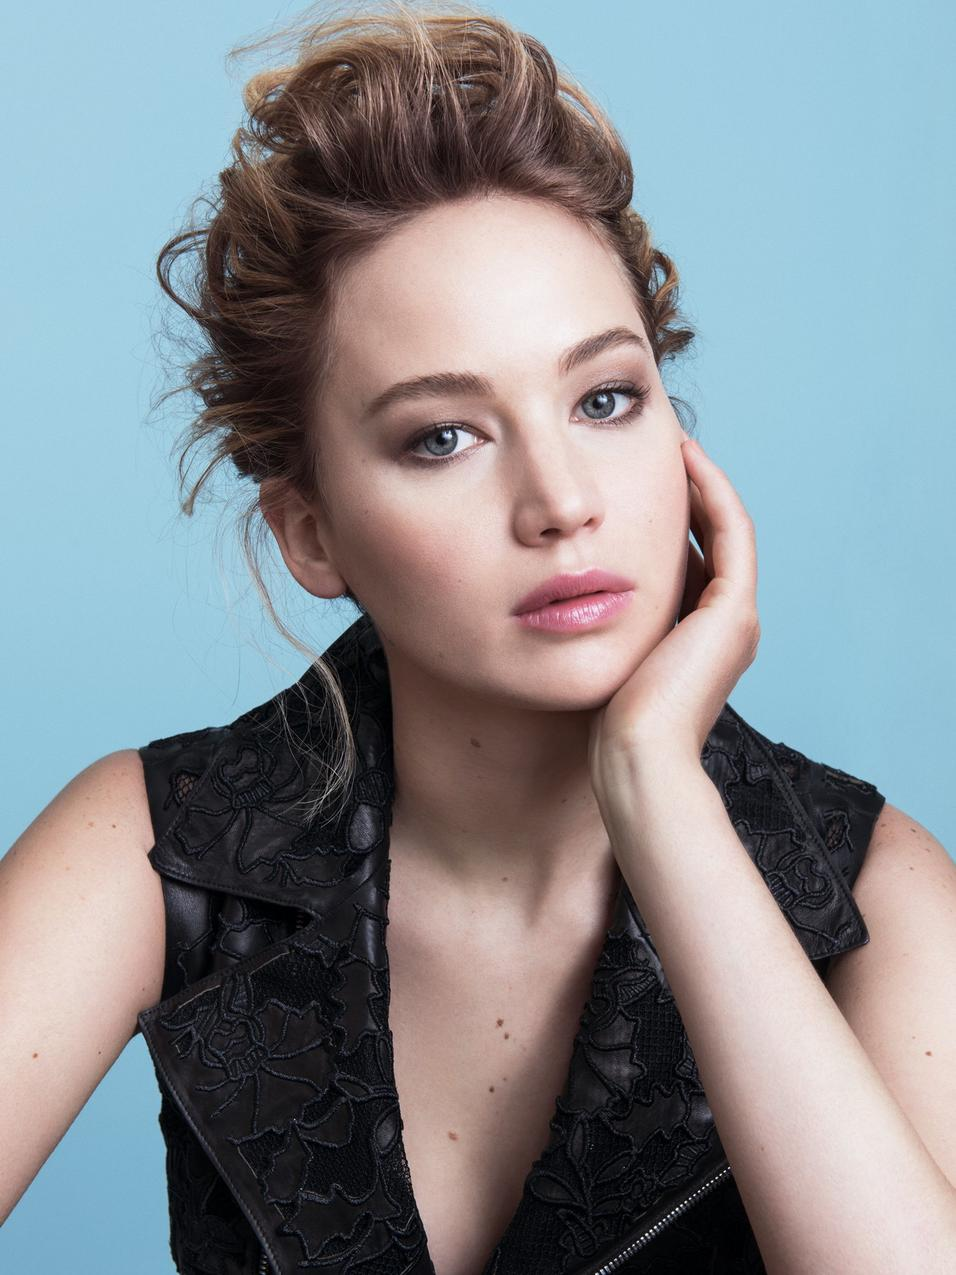 Jennifer Lawrence Dior Addict Ad 2015